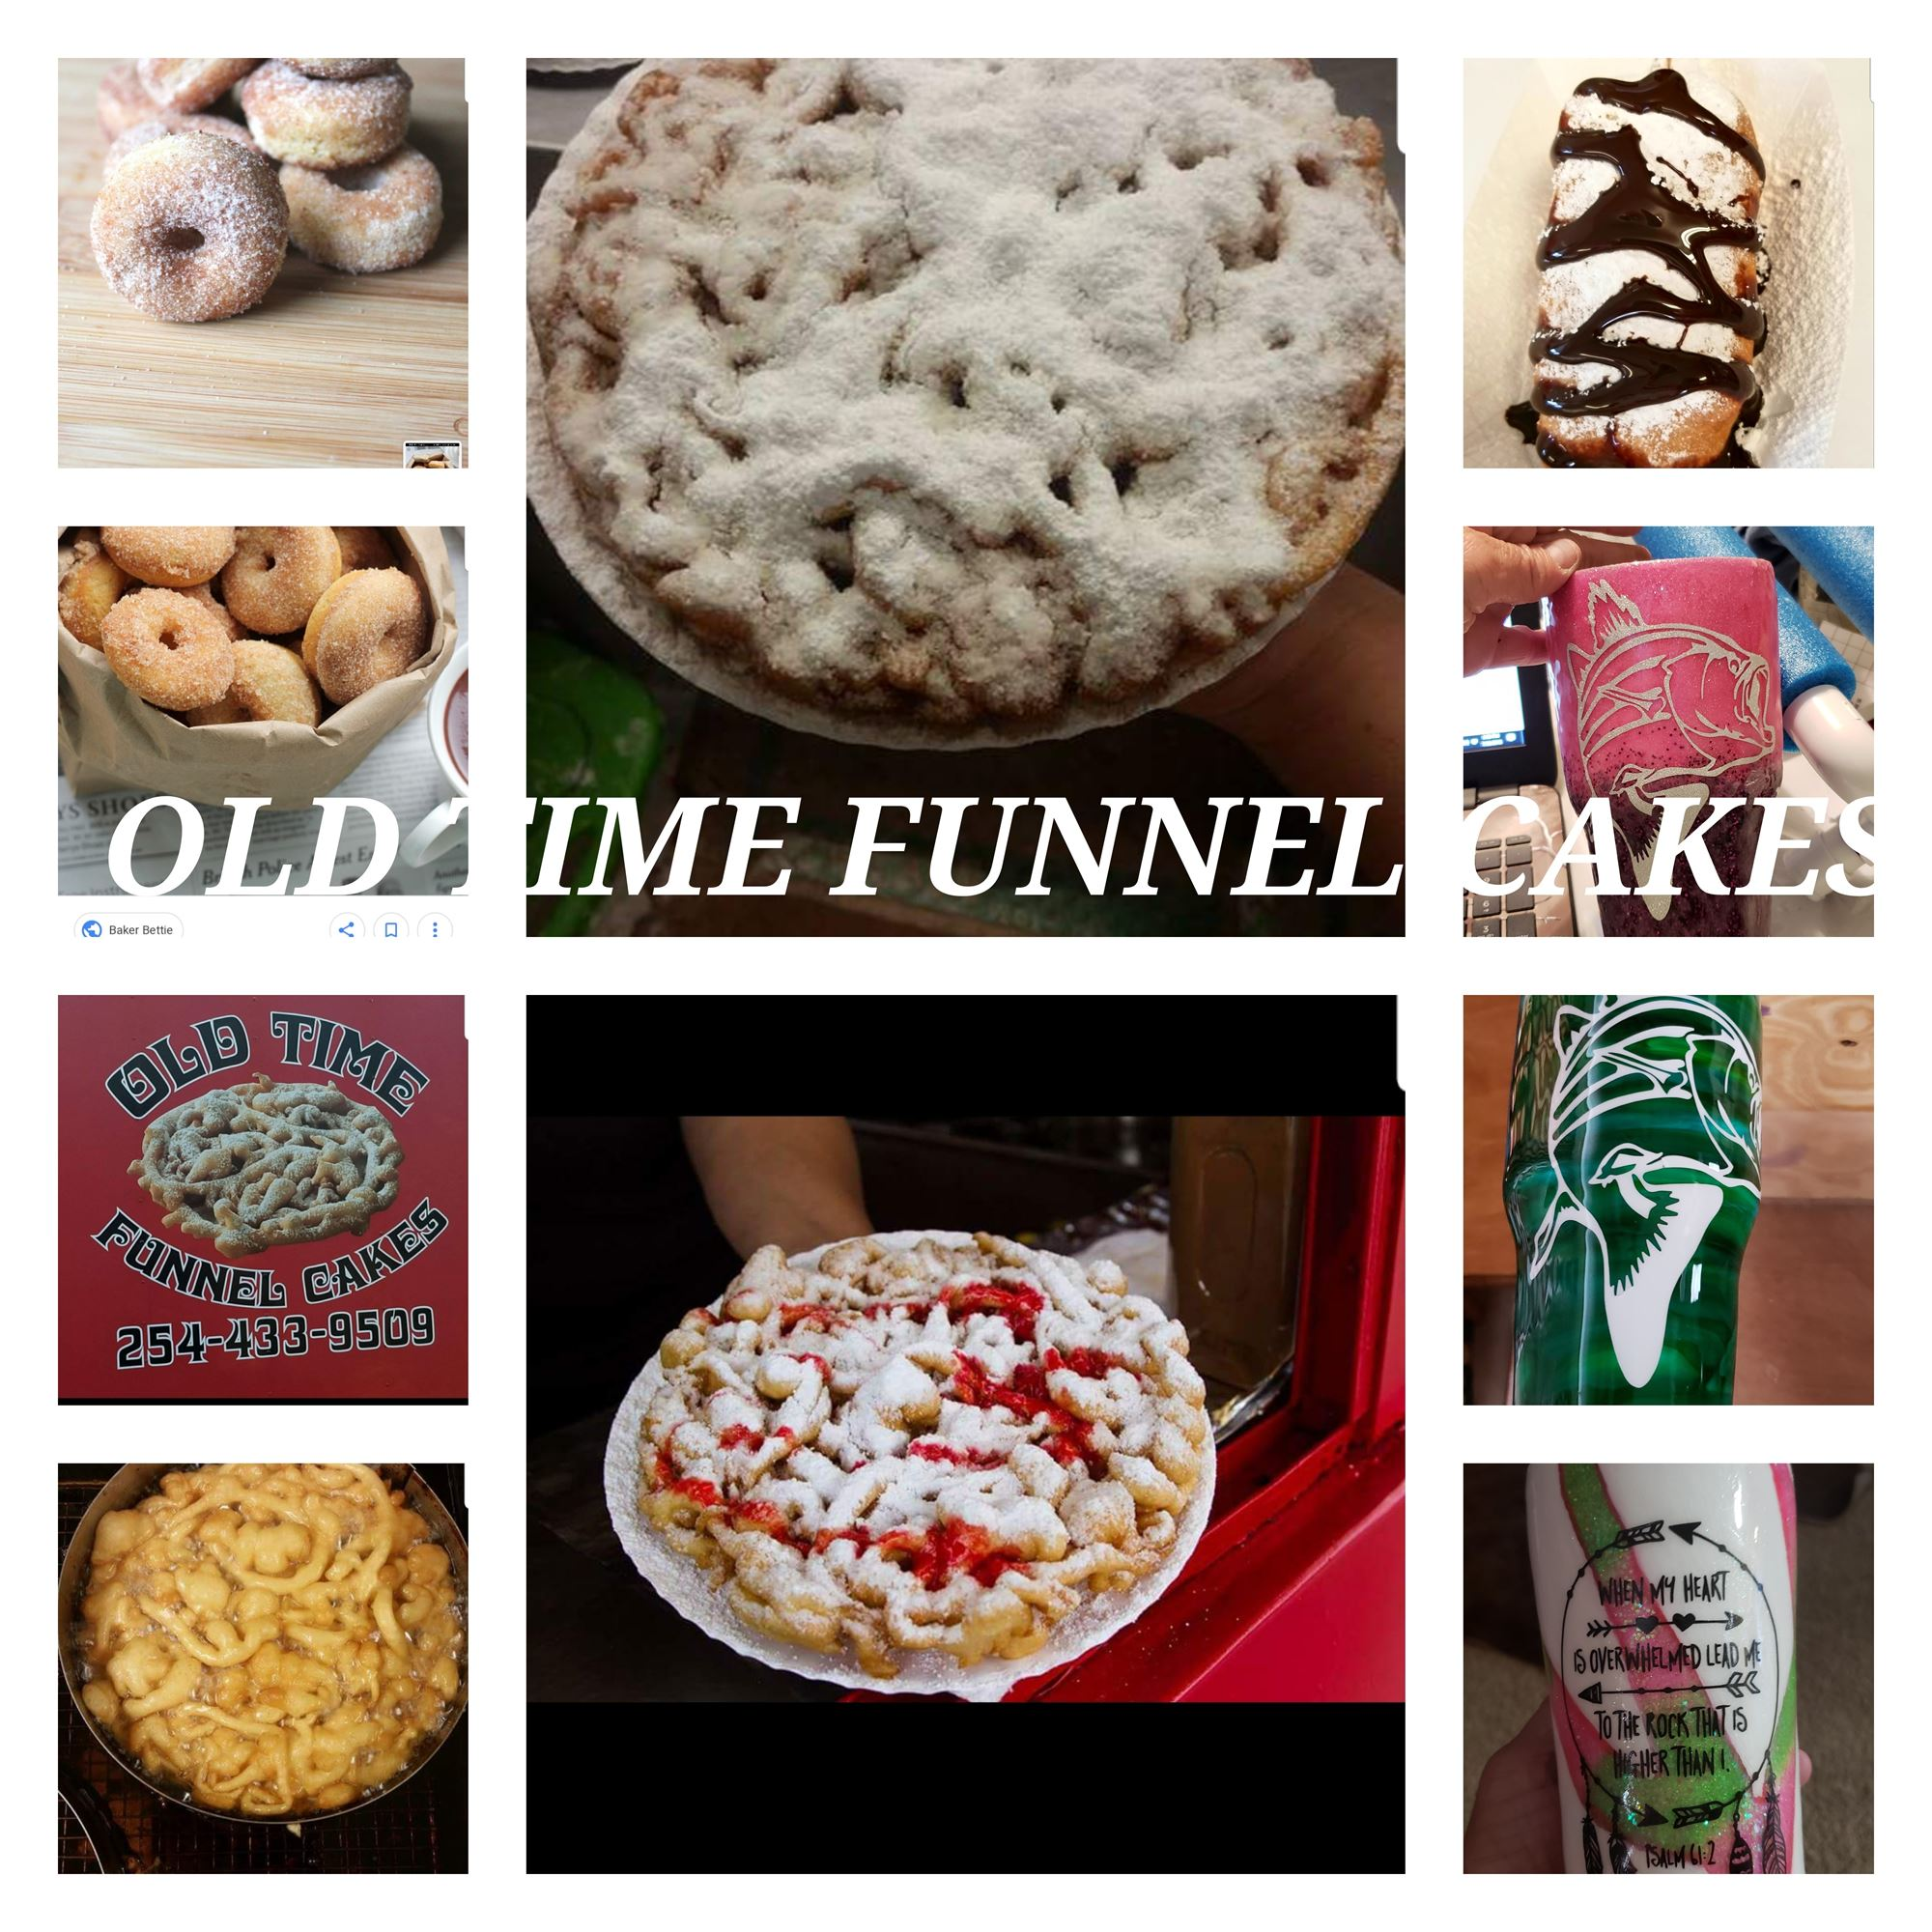 Old Time Funnel Cakes